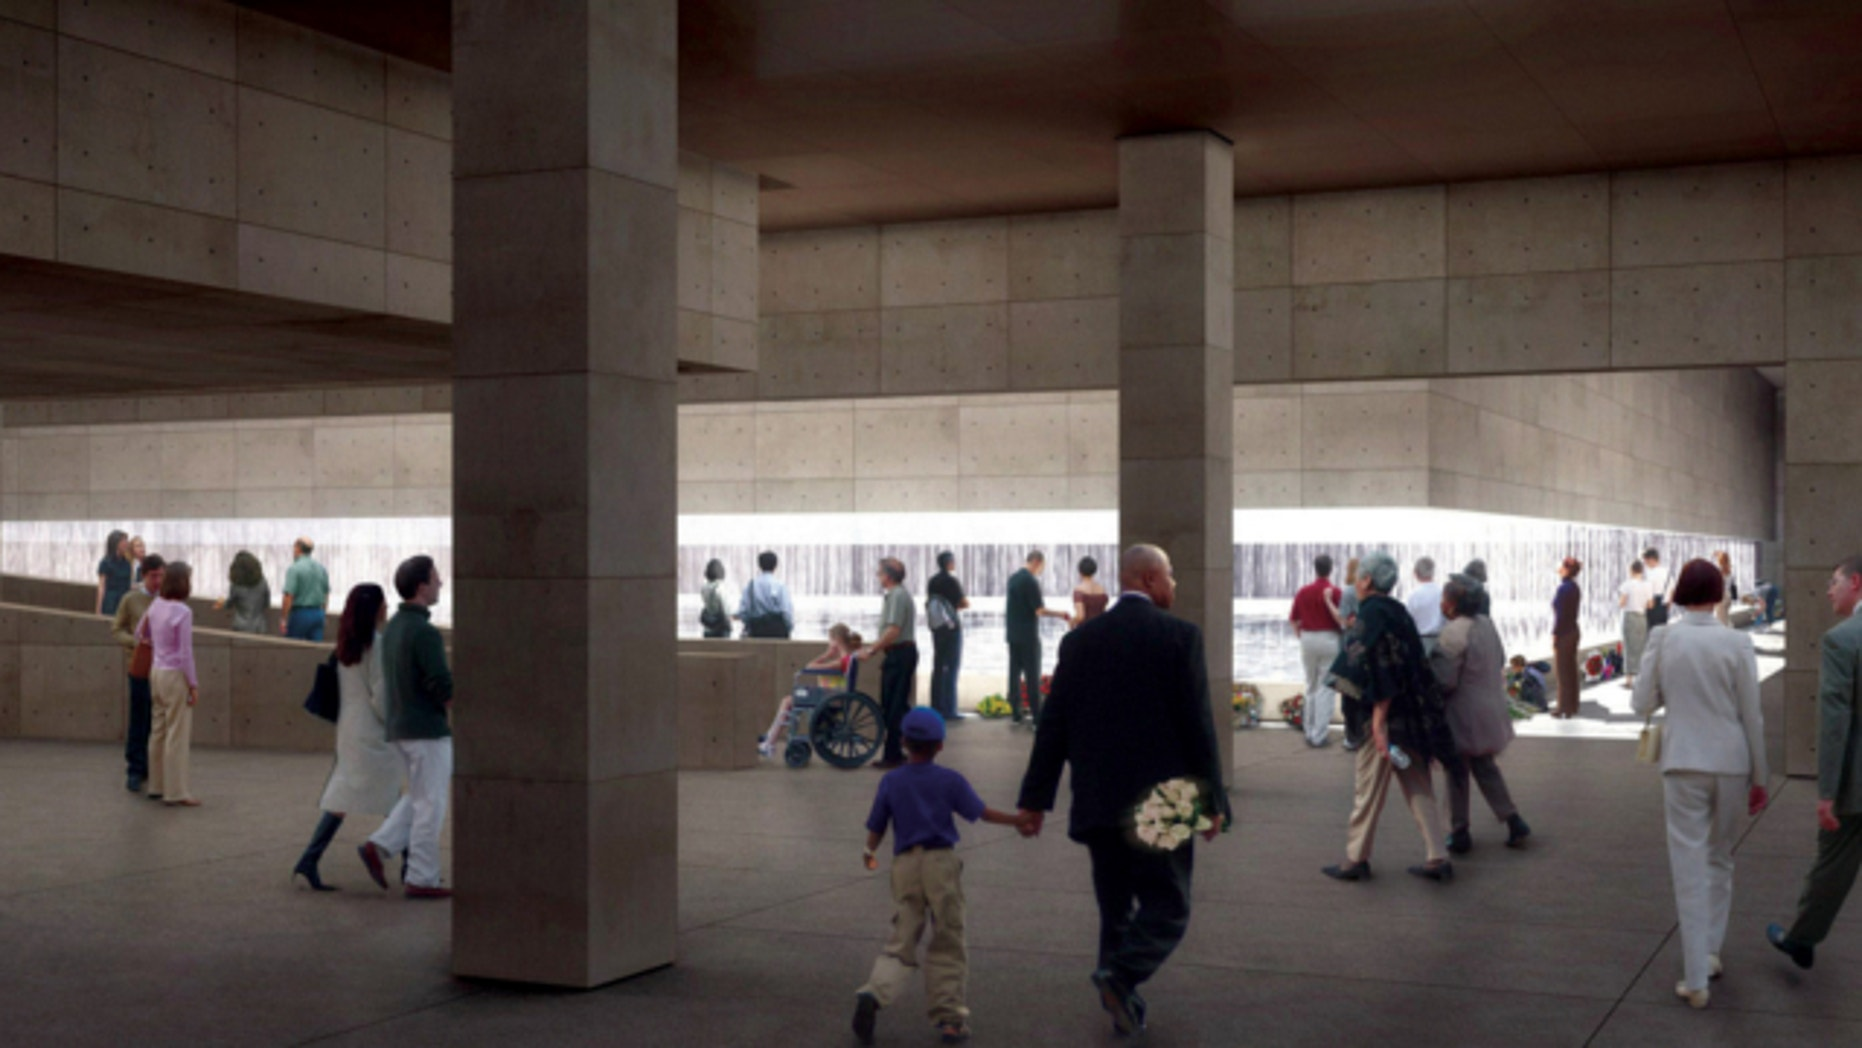 Dec. 16, 2004: In this artist rendering released by the Lower Manhattan Development Corporation, the Memorial Hall looking at the South Footprint is shown.